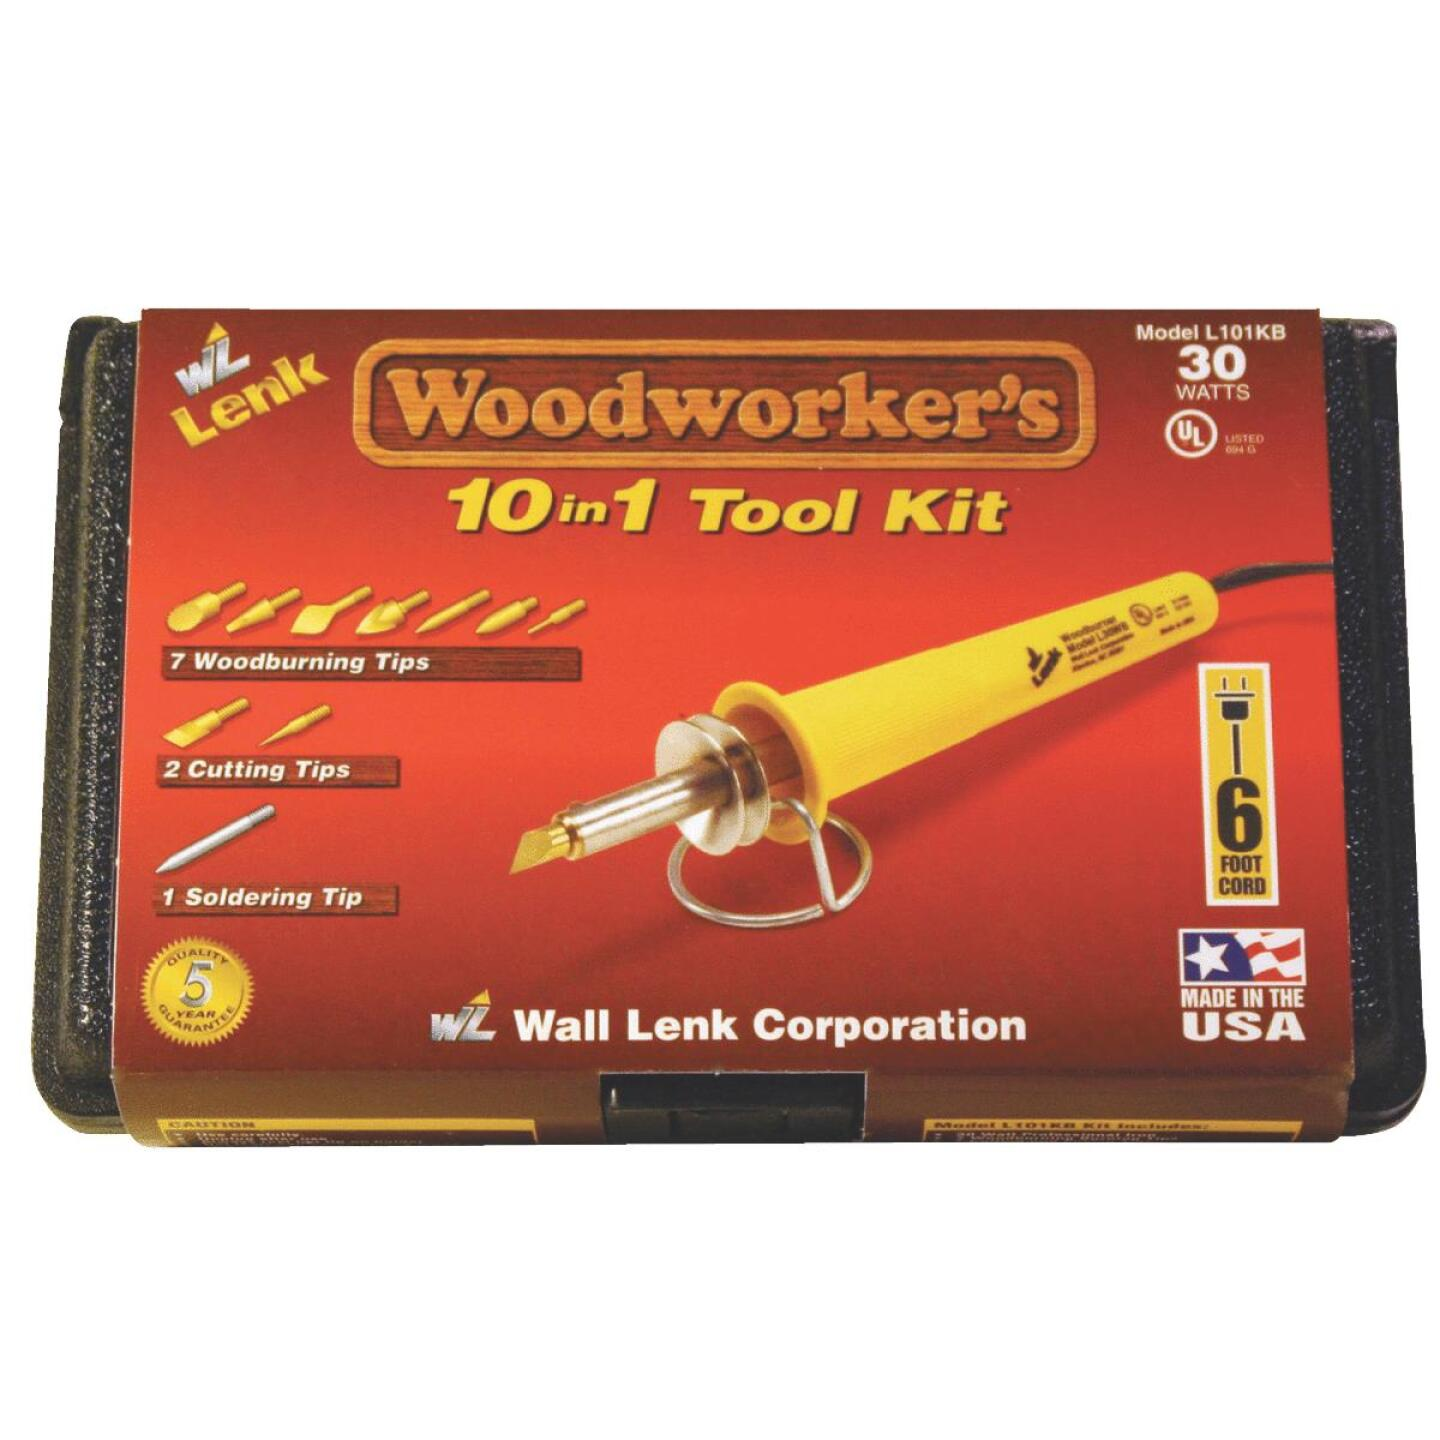 Wall Lenk Woodworker's 30W 10-in-1 Wood Burning Kit Image 2